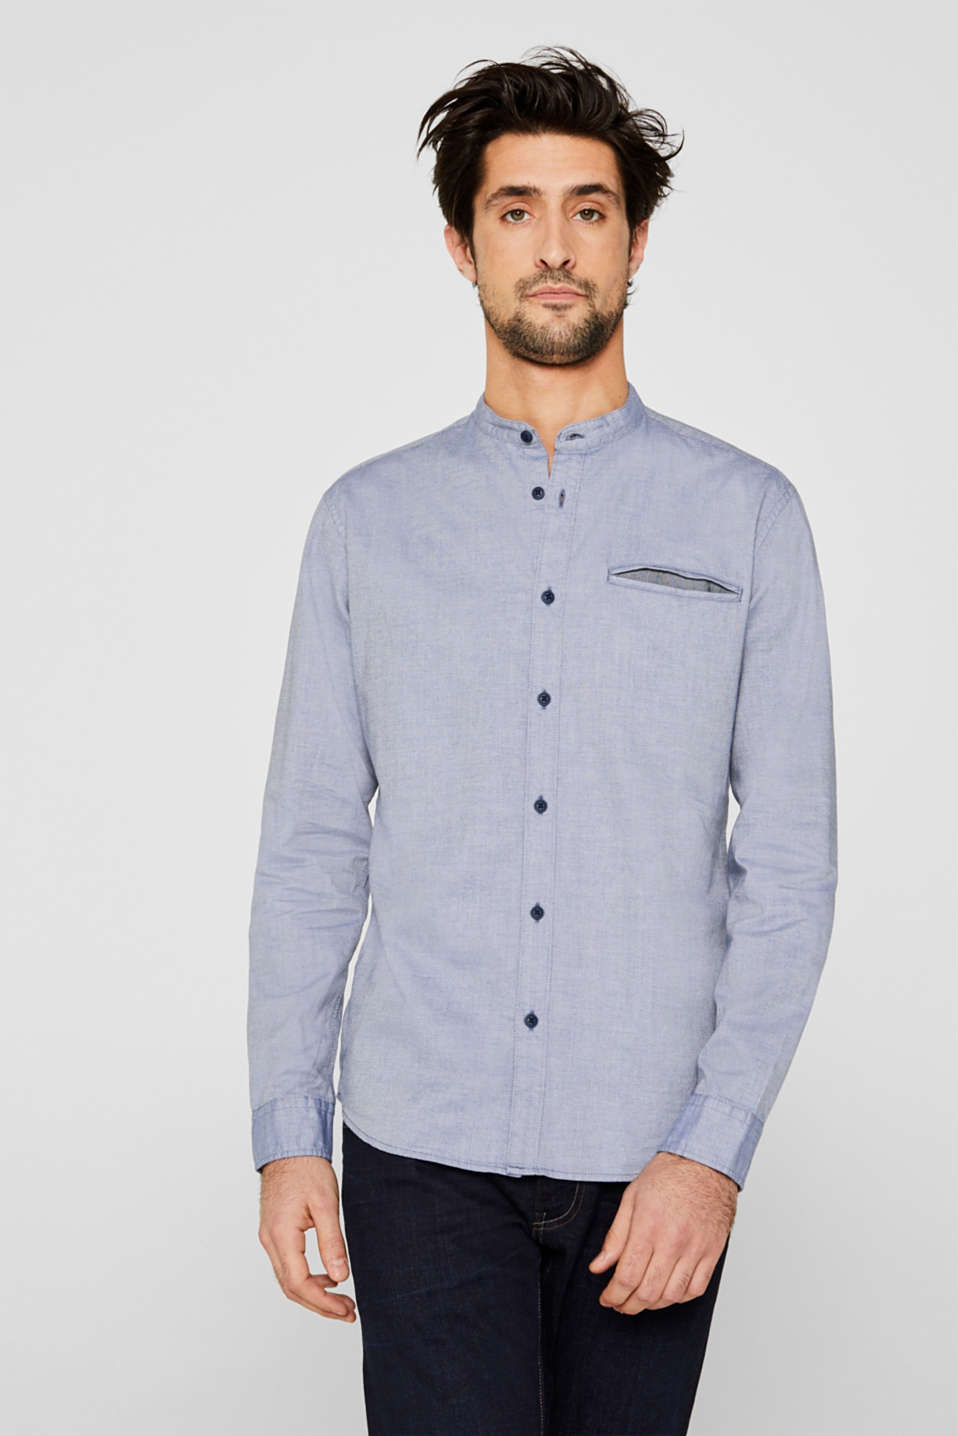 Shirt with band collar, 100% cotton, GREY BLUE 5, detail image number 5